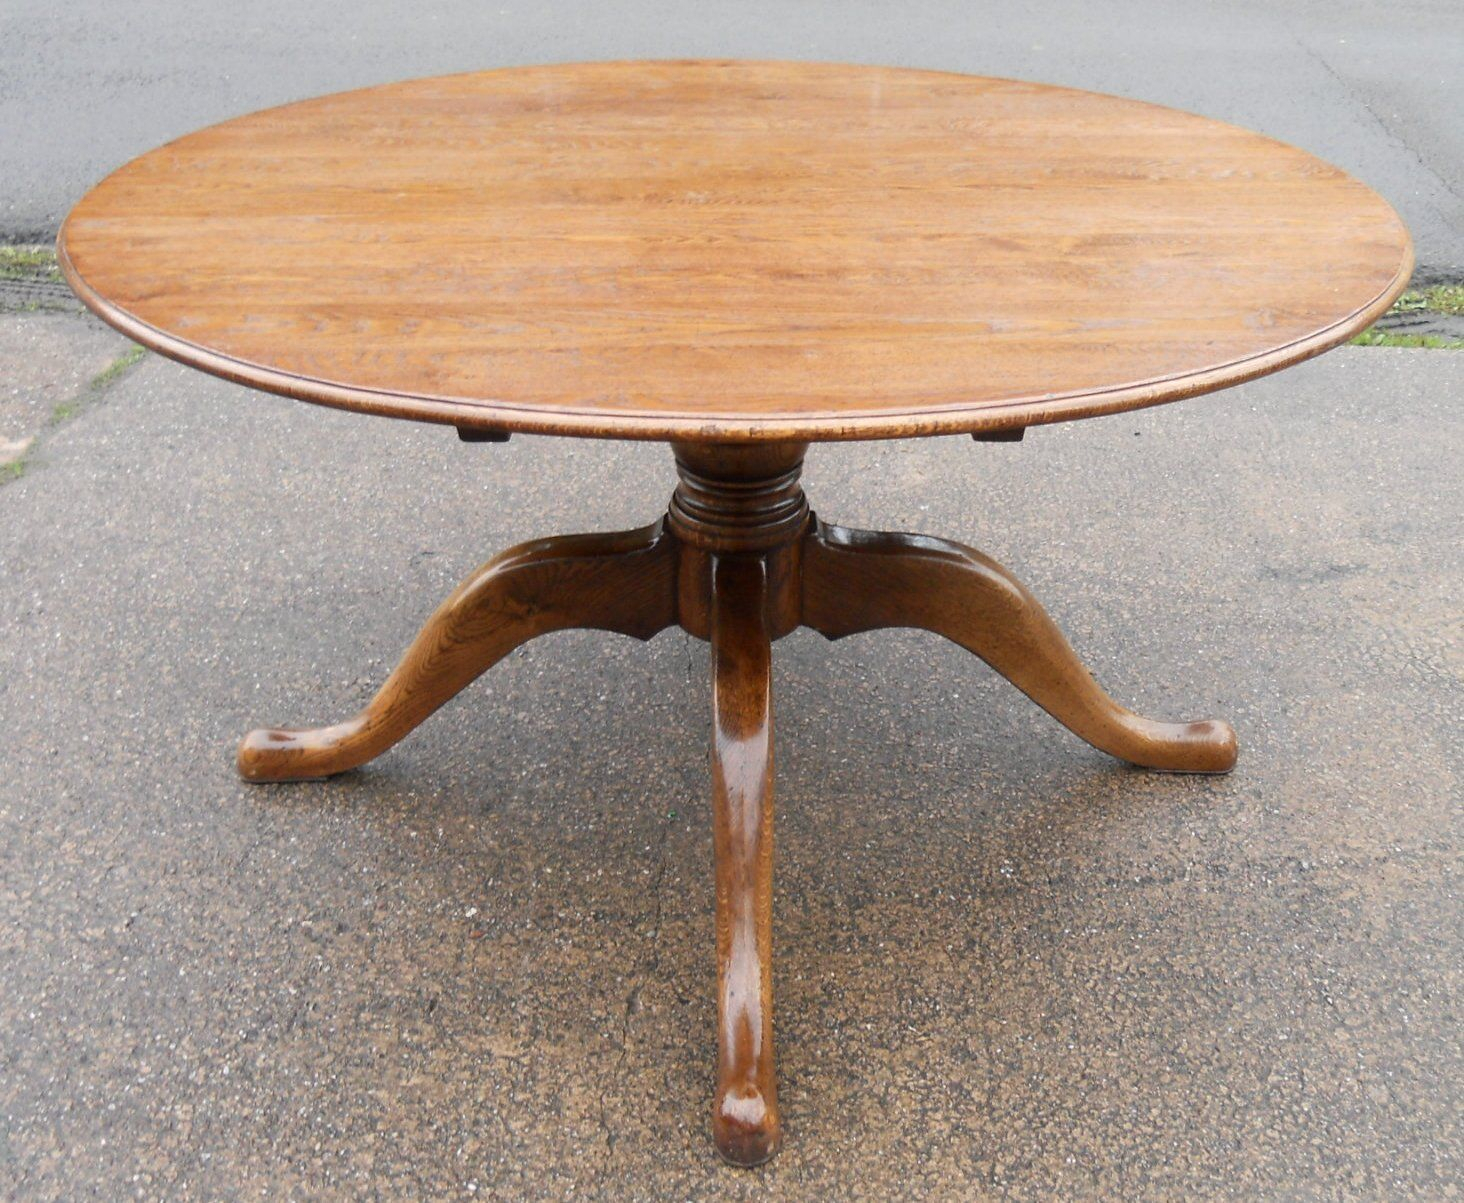 Sold – Large Round Oak Pedestal Dining Table To Seat Eight Throughout Most Current Serrato Pedestal Dining Tables (View 11 of 15)